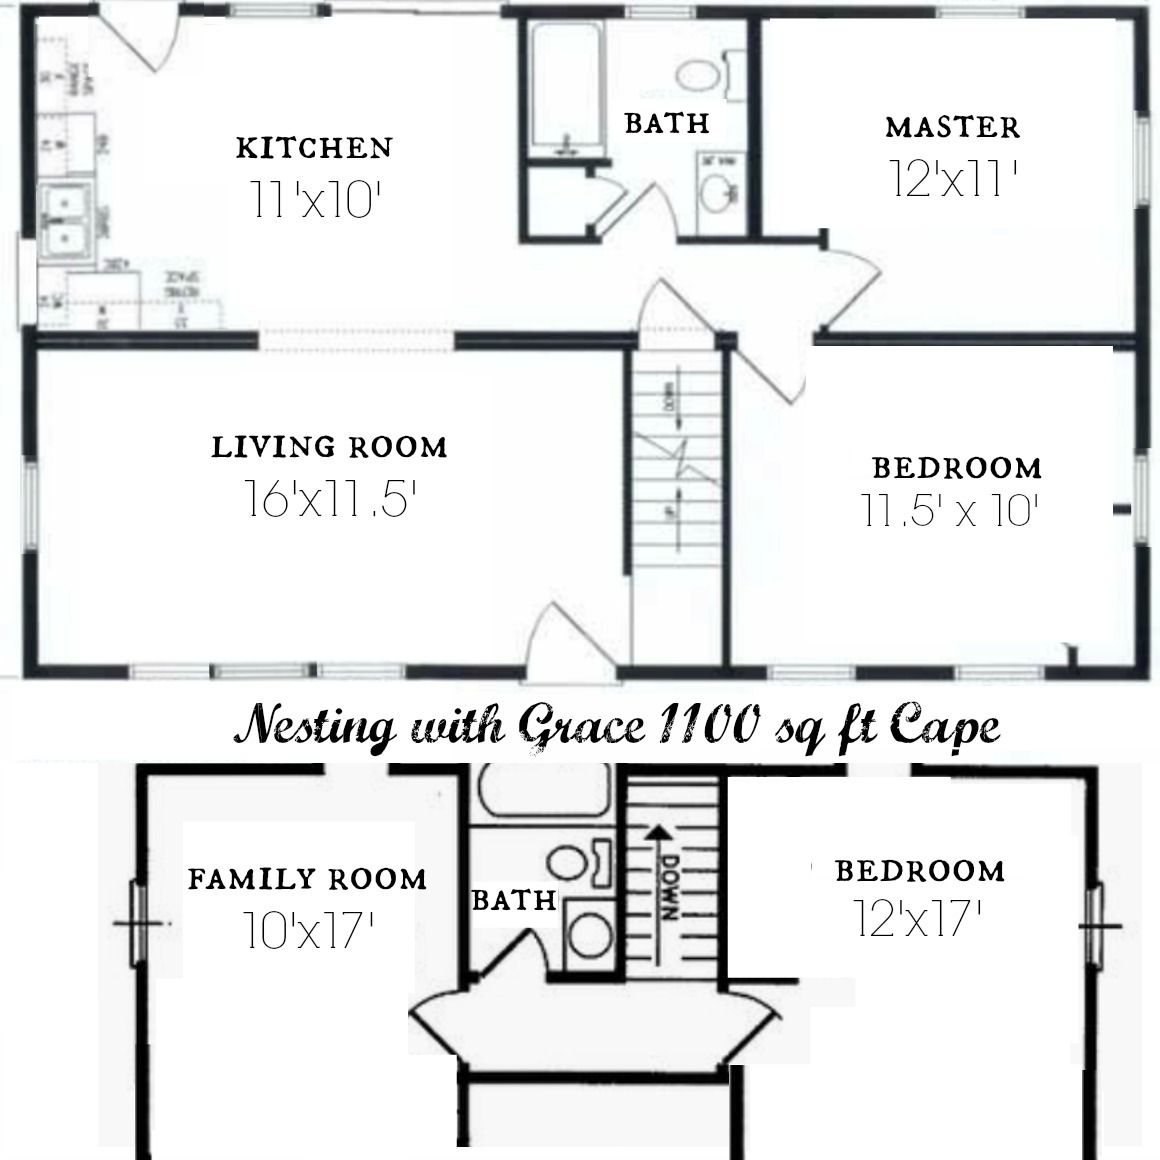 Complete Before And After S 1100 Sq Ft Cape Floor Plan And Future Nesting With Grace